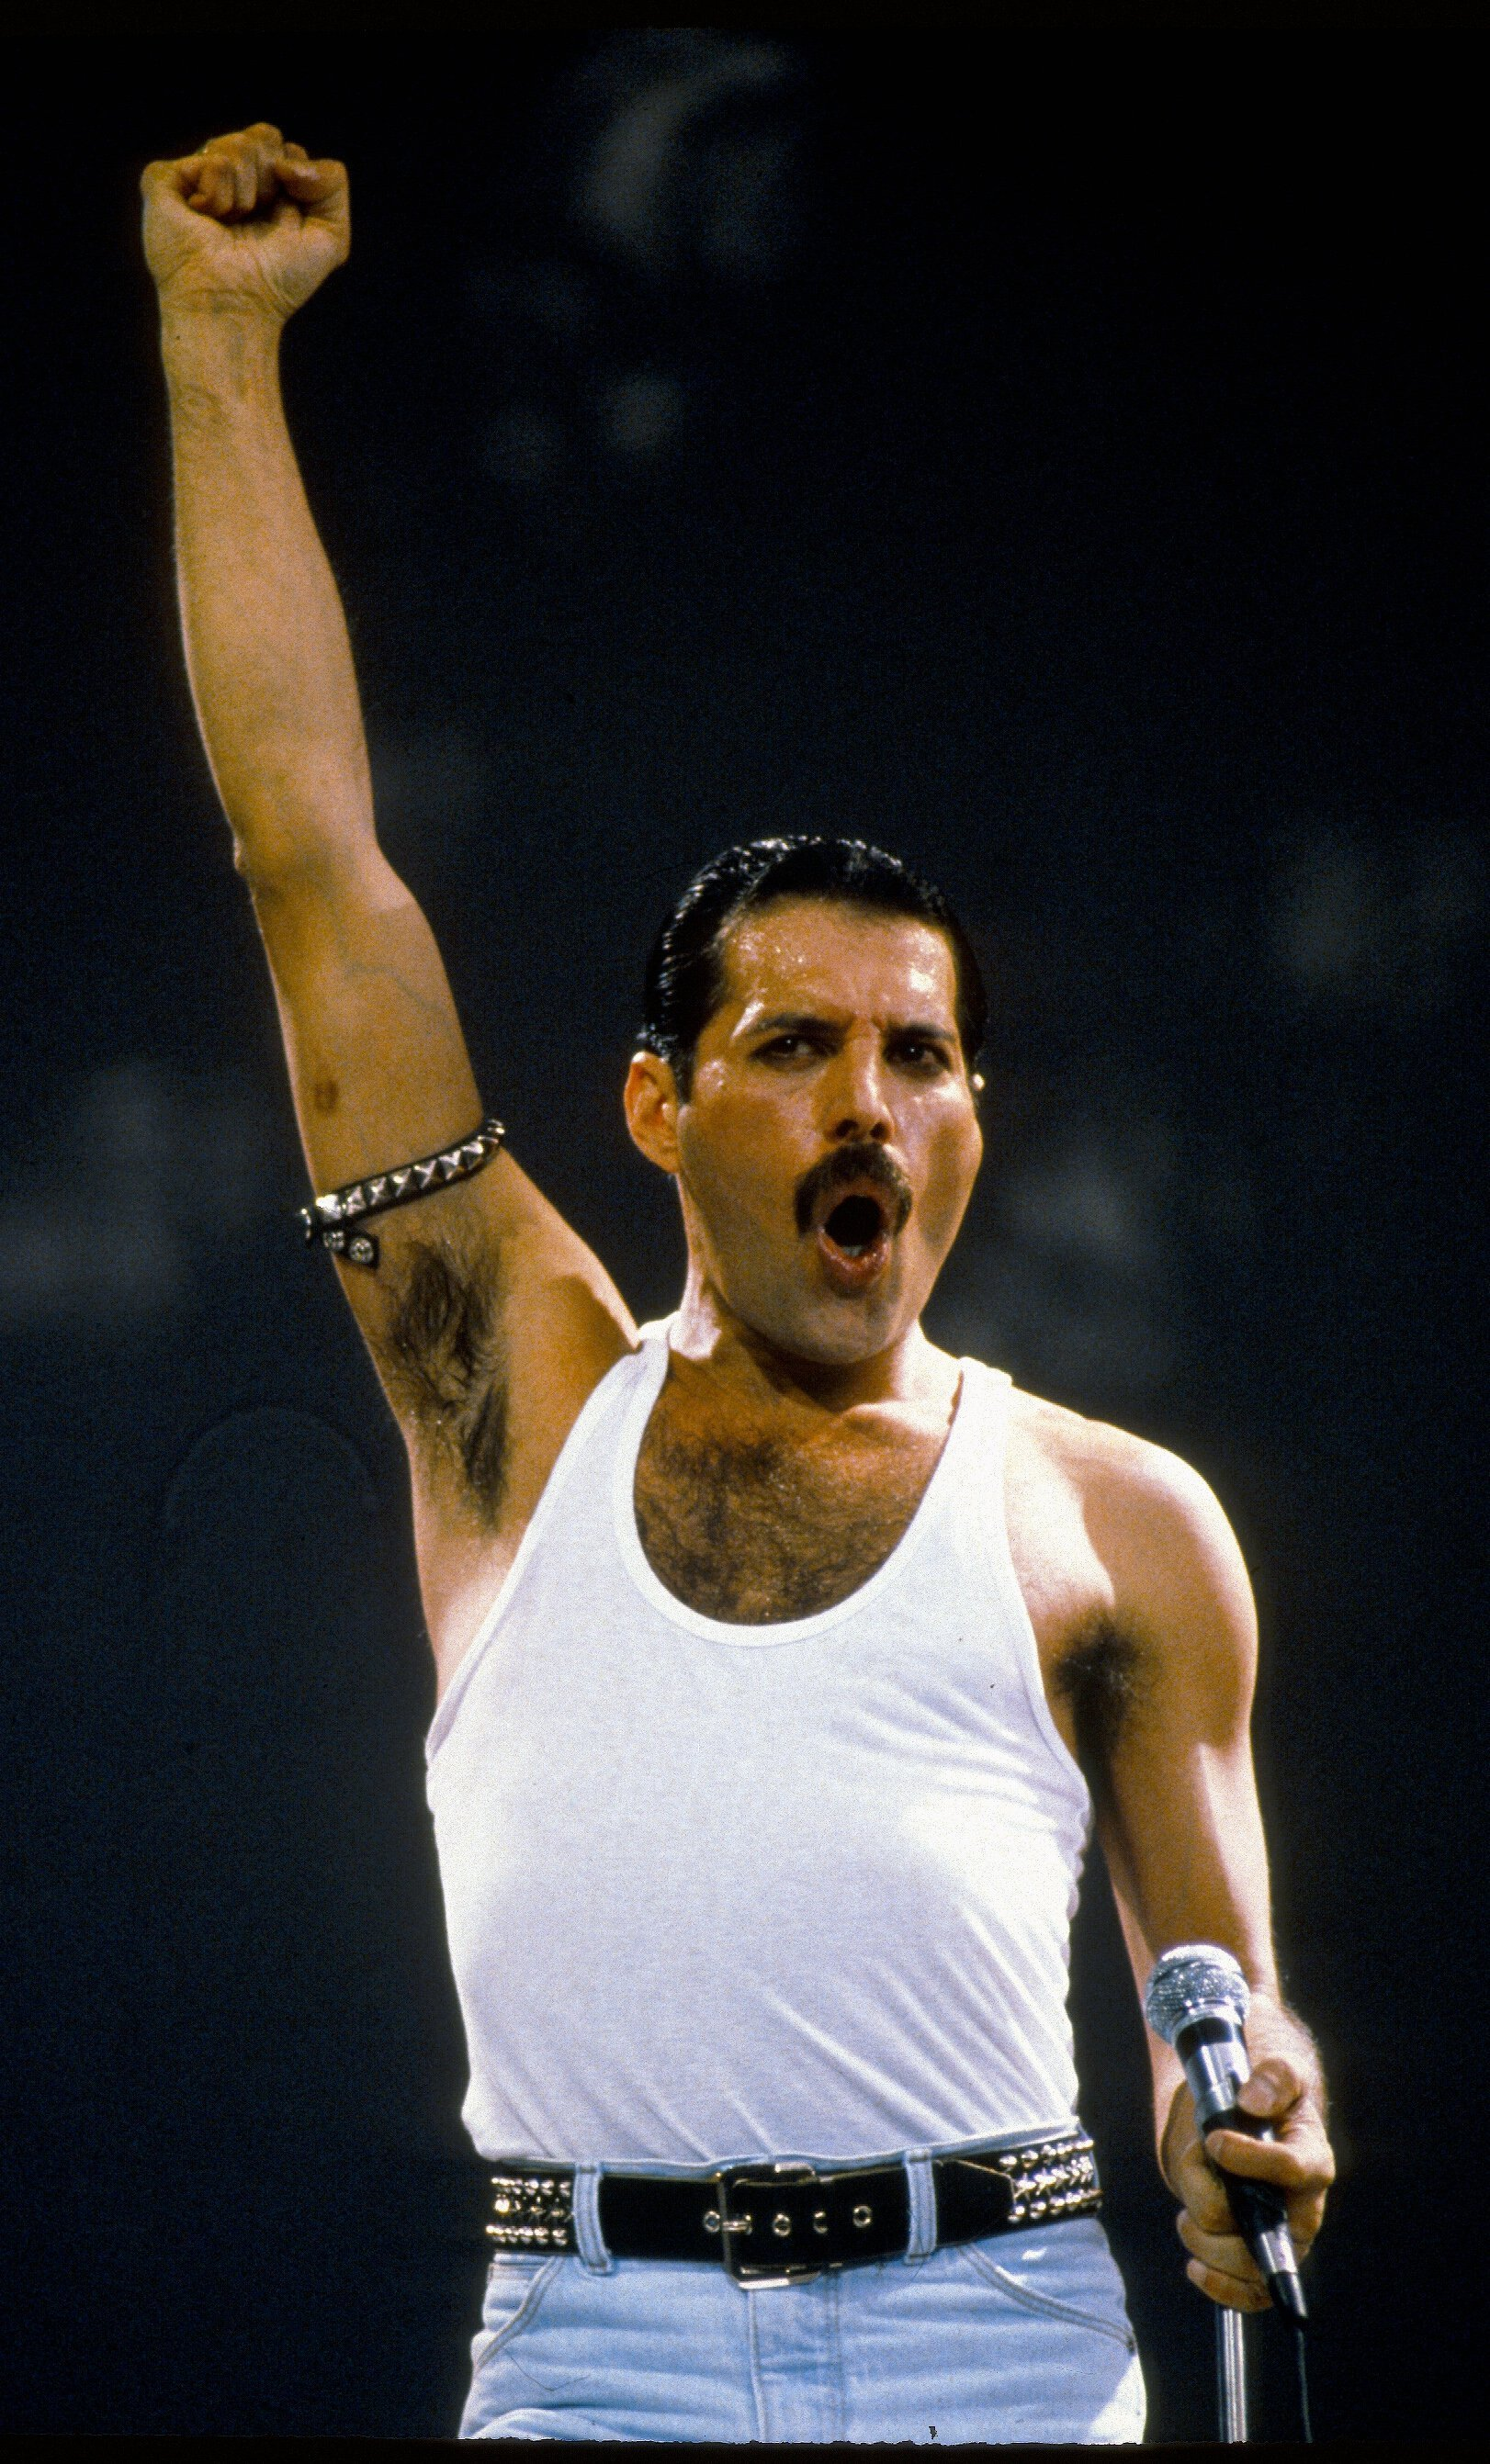 Freddie Mercury at the Live Aid concert on July 13, 1985 in London, England | Photo: Getty Images